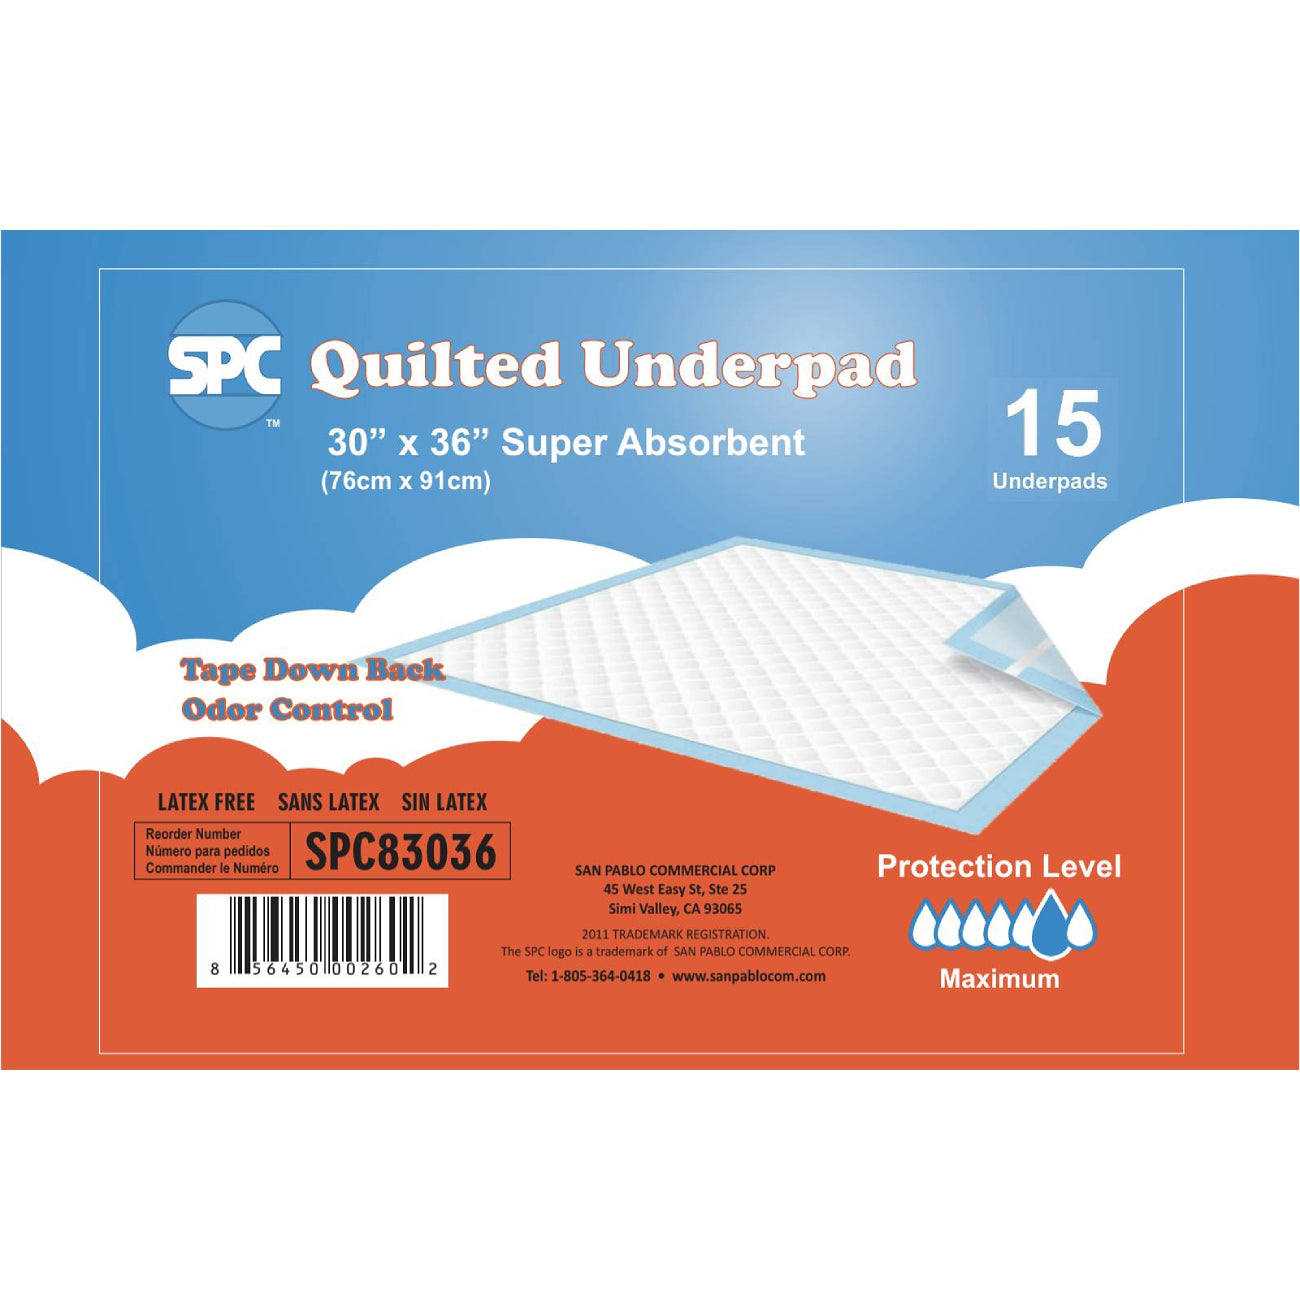 SPC Disposable Underpads 30 x 36 Super Absorbent (75 count)